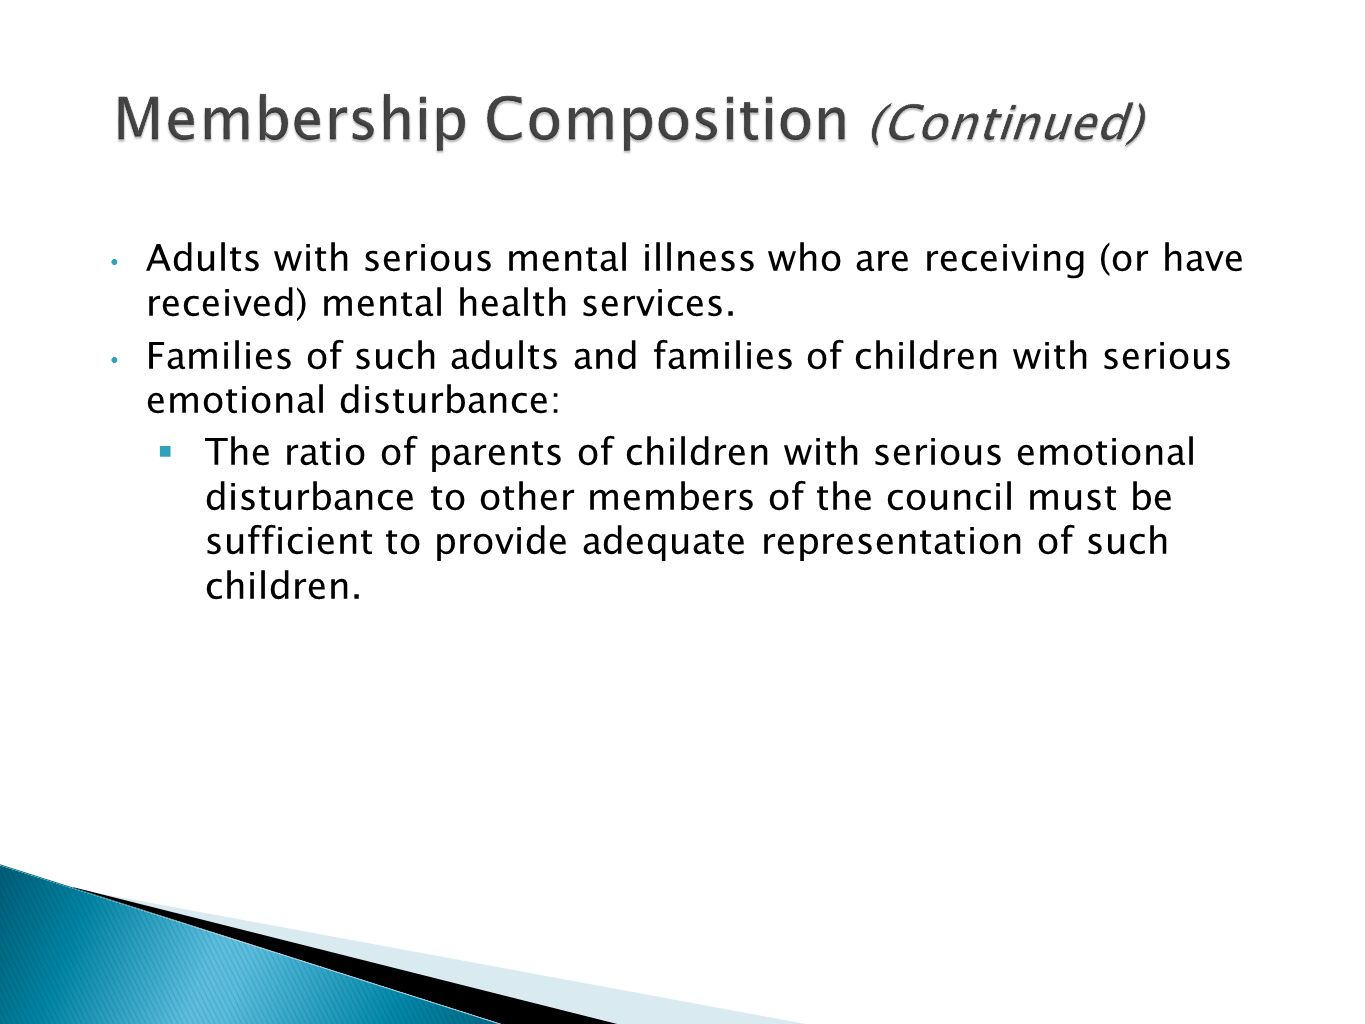 Adults with serious mental illness who are receiving (or have received) mental health services.